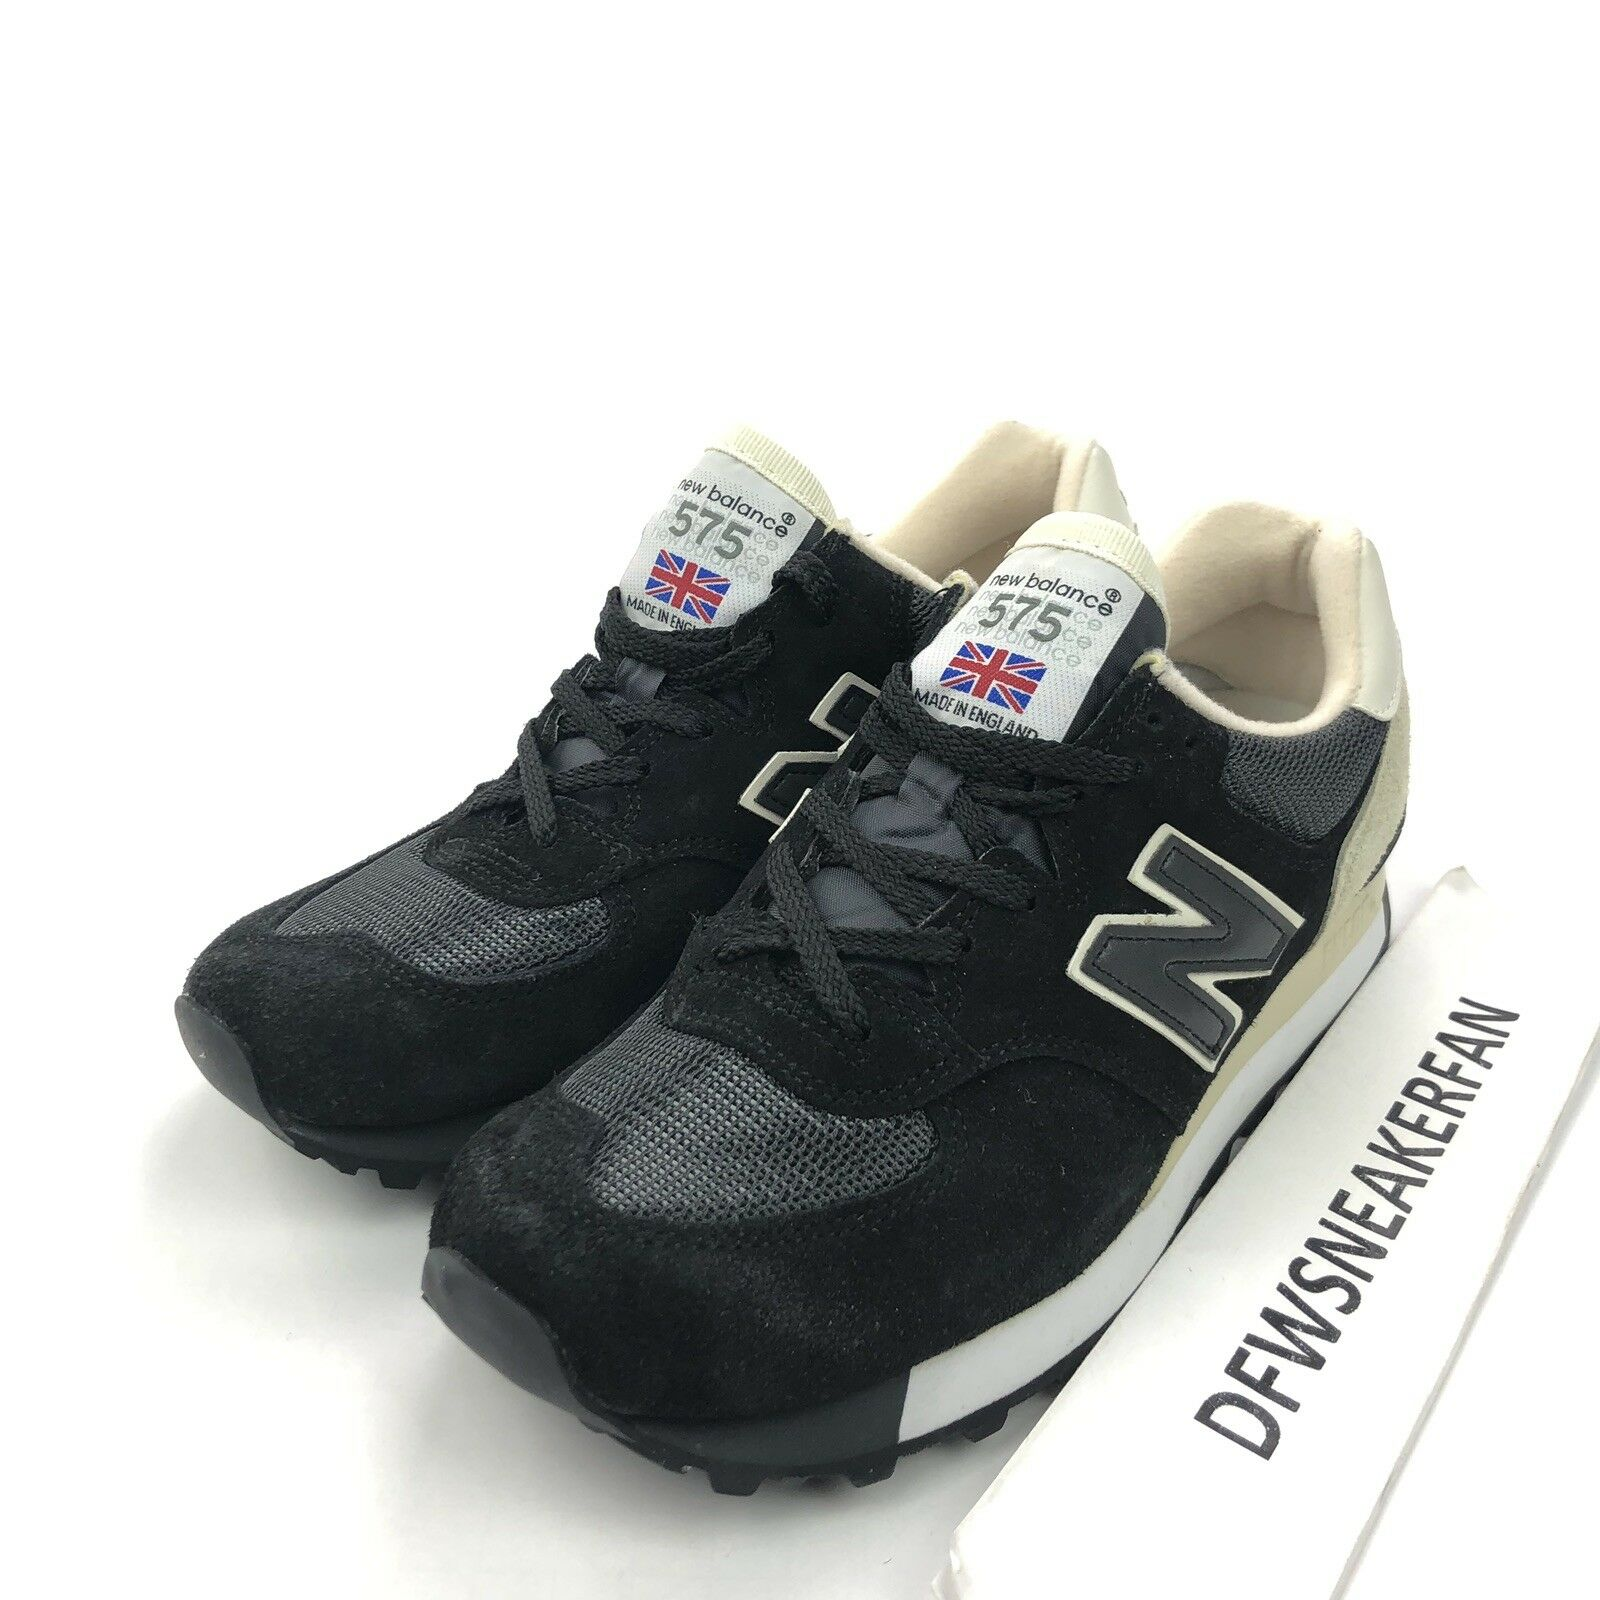 New Balance M575SKG Men's Size 8 Black Made In England Classic shoes Suede New